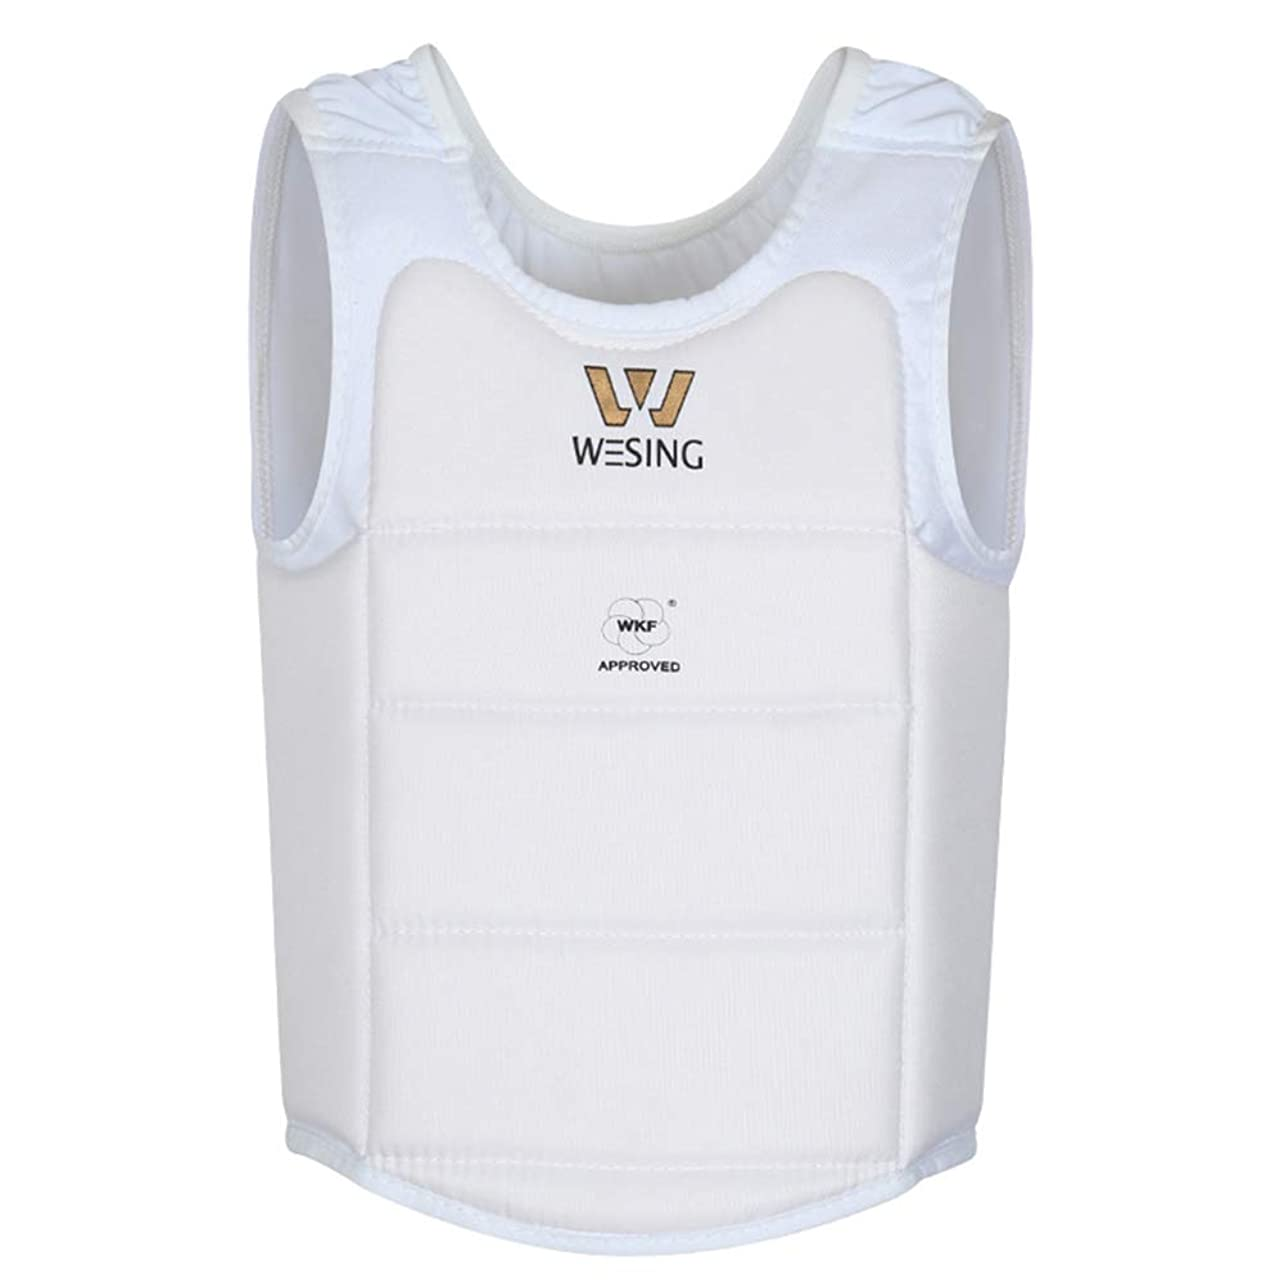 Wesing WKF Approved Karate Chest Protector MMA Chest Protector oaowygcyvuf91